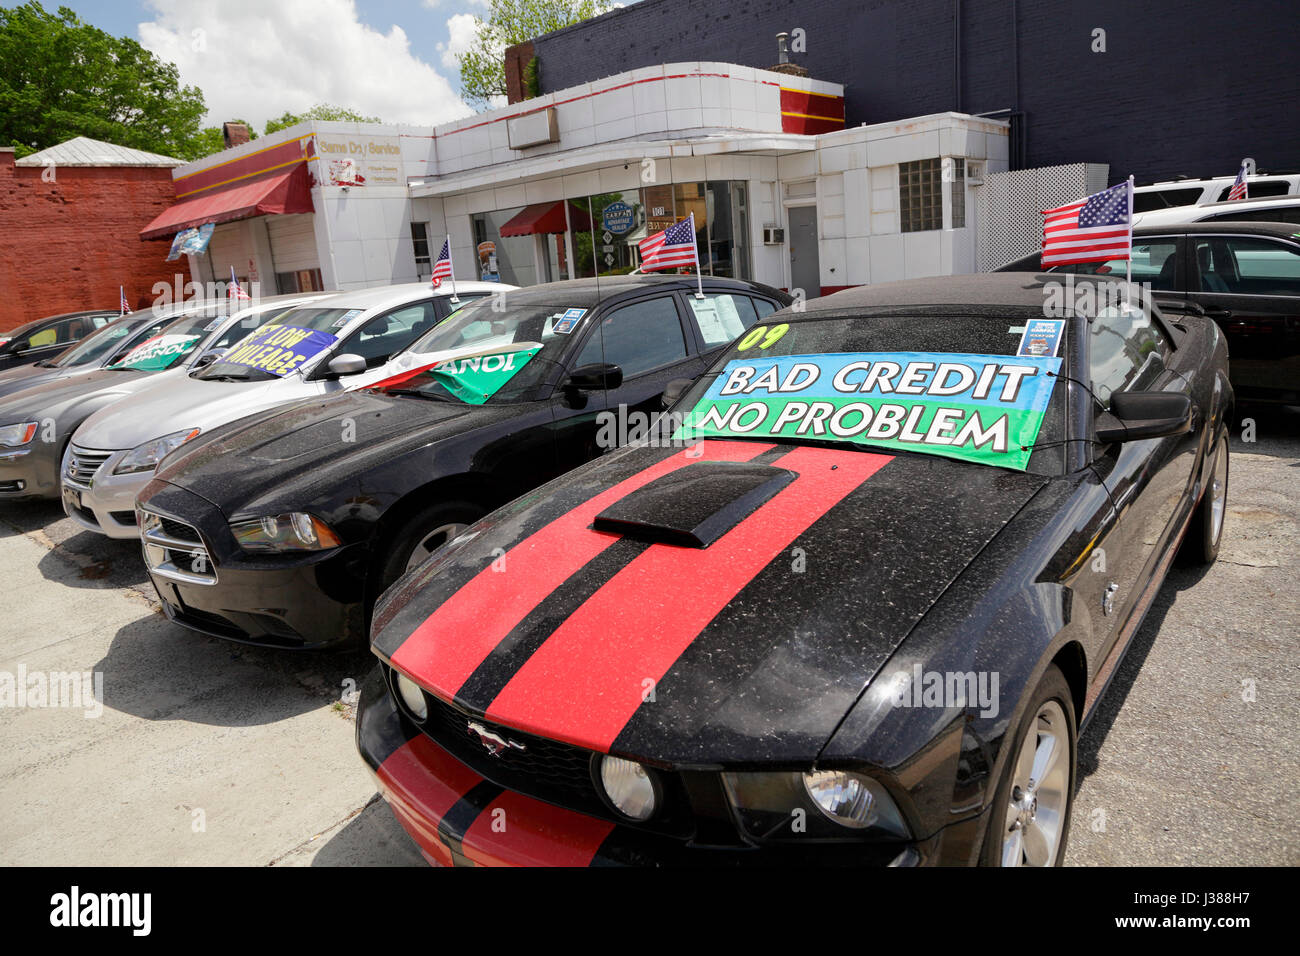 Used cars for sale, North Carolina, USA Stock Photo: 139709283 - Alamy